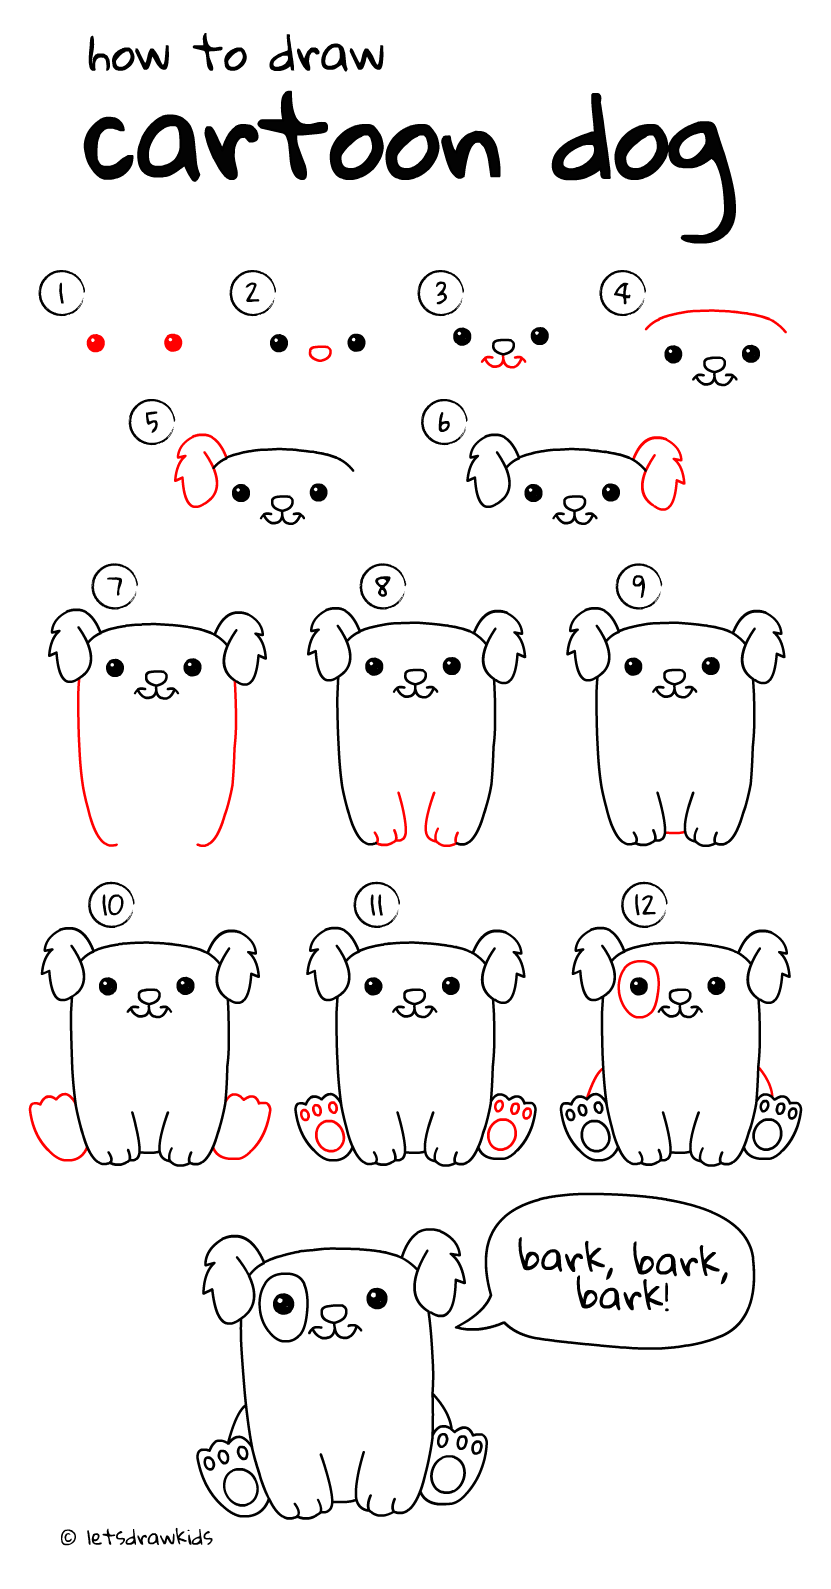 How To Draw Cartoon Dog Easy Drawing Step By Step Perfect For Kids Let S Draw Kids Http Letsdrawkids Com Easy Drawings Cartoon Drawings Drawing For Kids